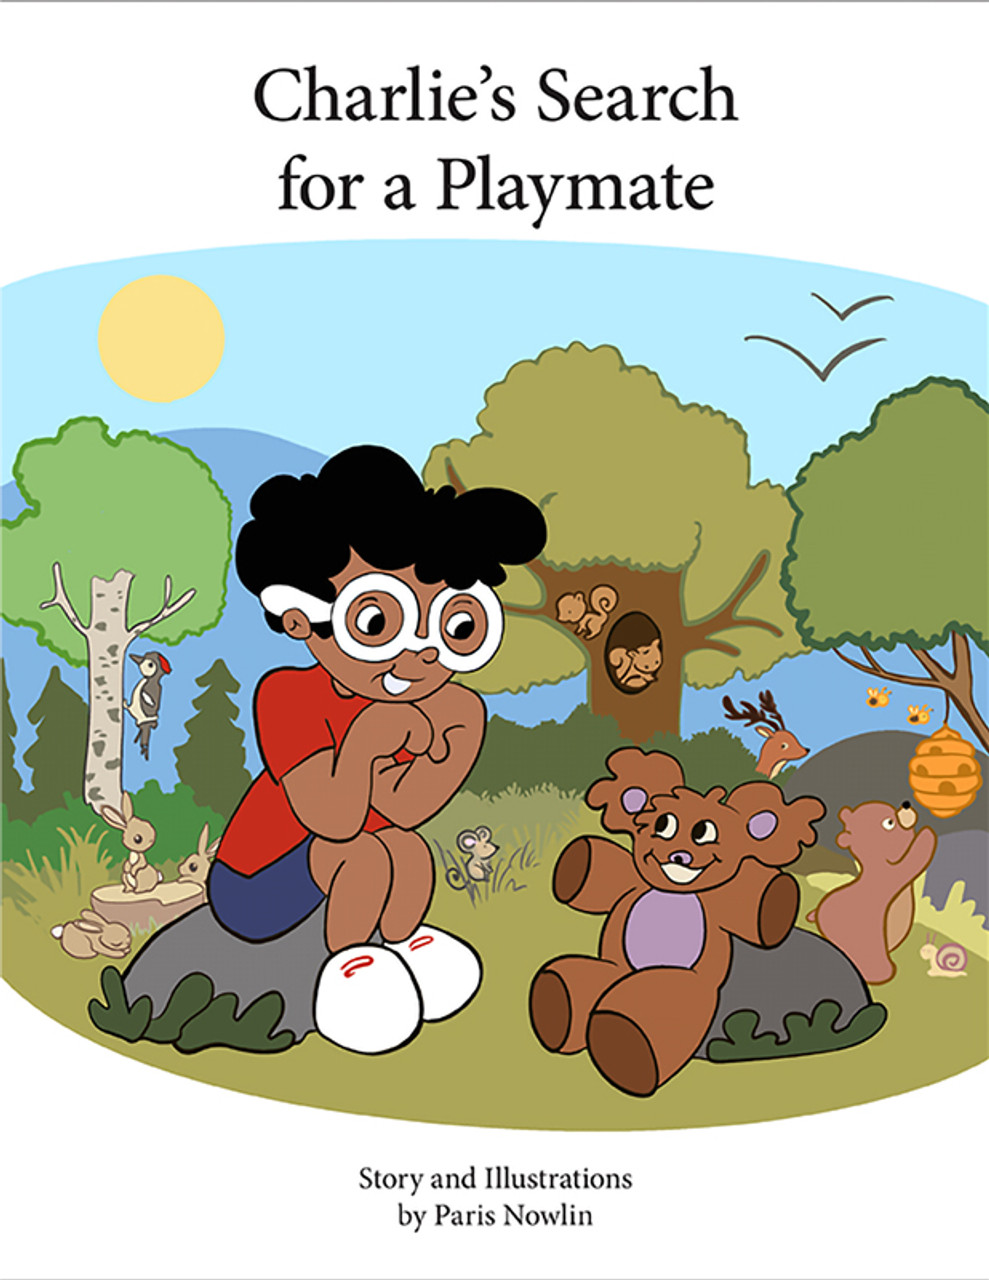 Charlie's Search for a Playmate